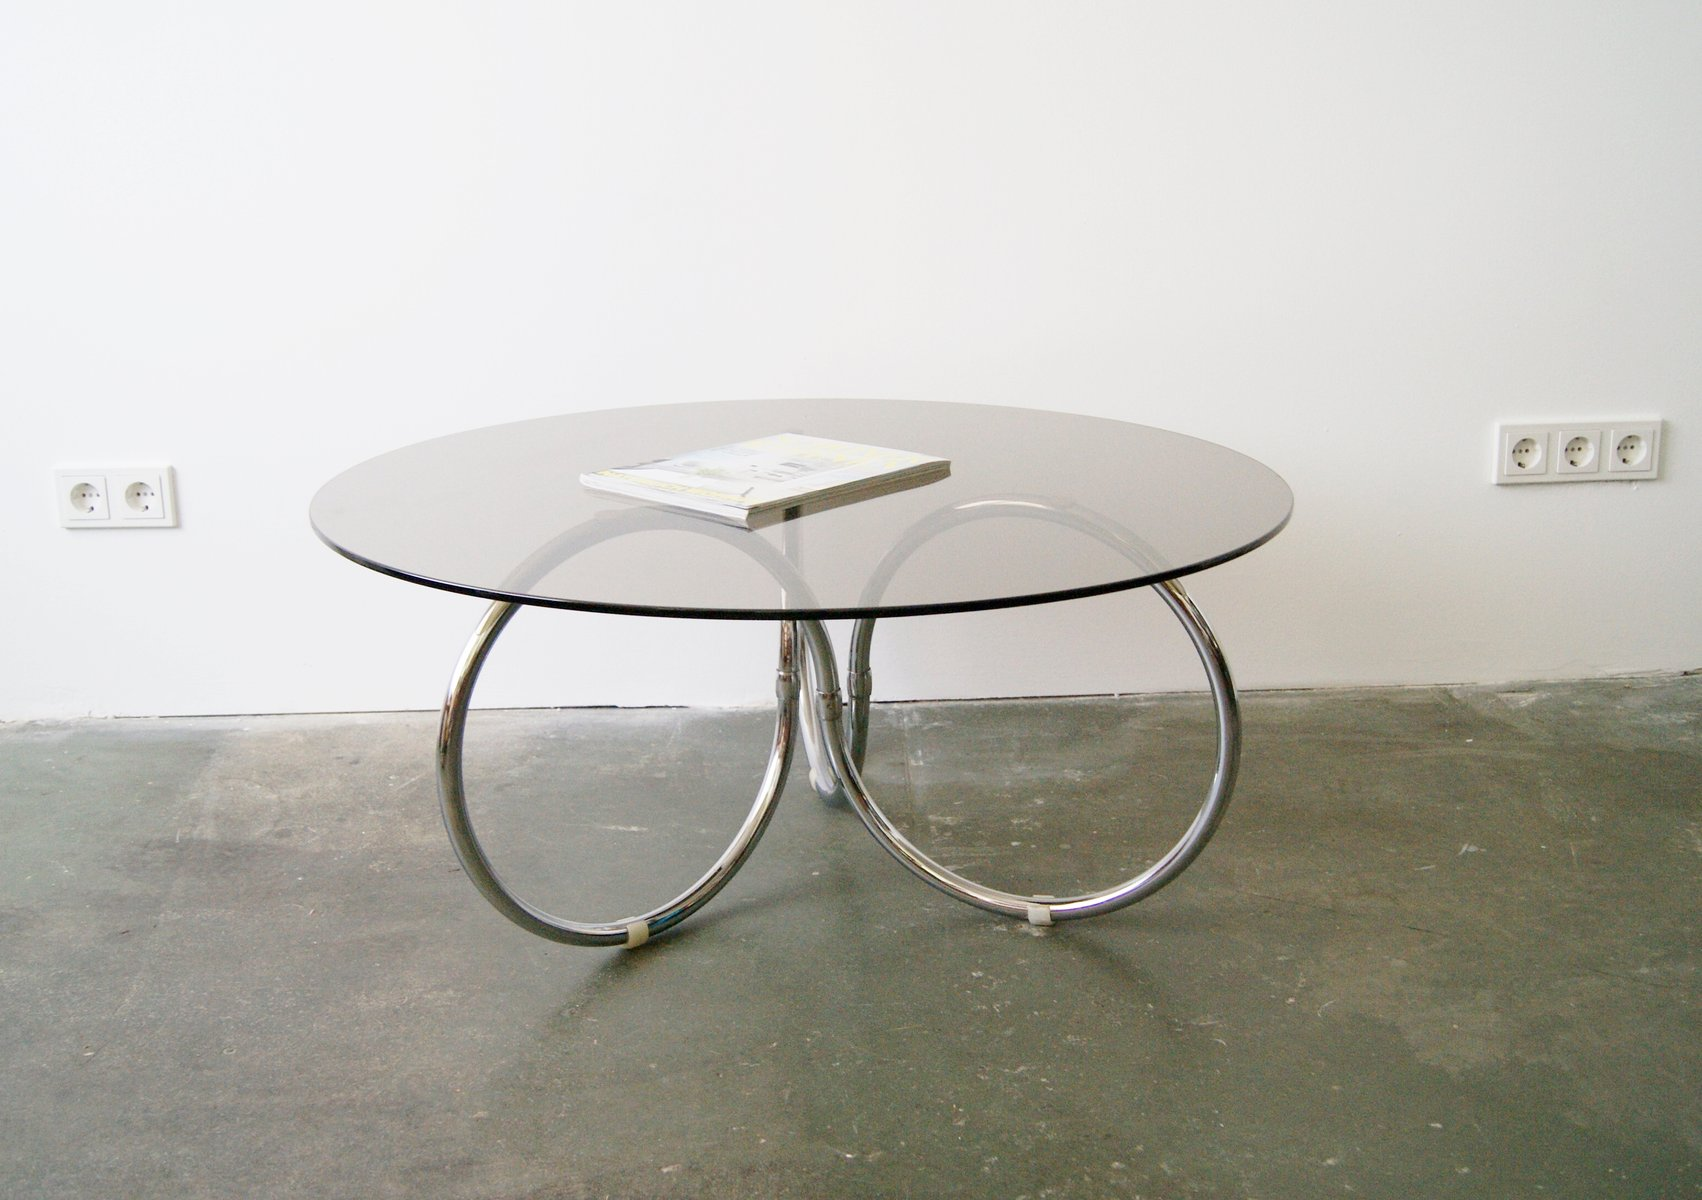 Table Basse Ronde En Verre Design Table Basse Ronde En Verre Chrome 1970s